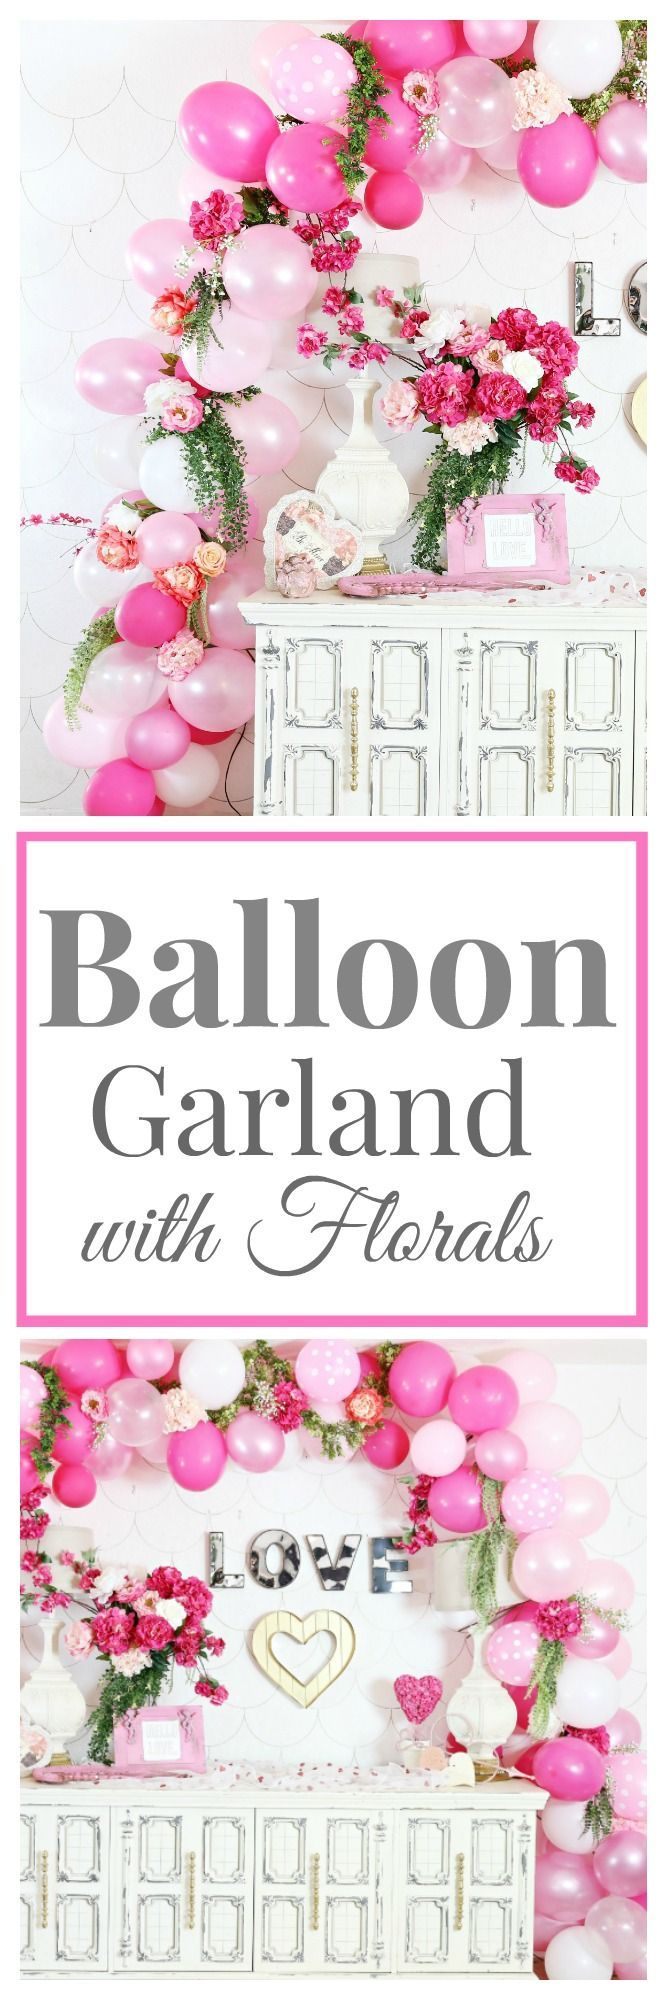 Valentines Party Decor- DIY Balloon and Floral Garland is one of my favorite party decorations. We have done this balloon garland many times and every time its a show stopper.